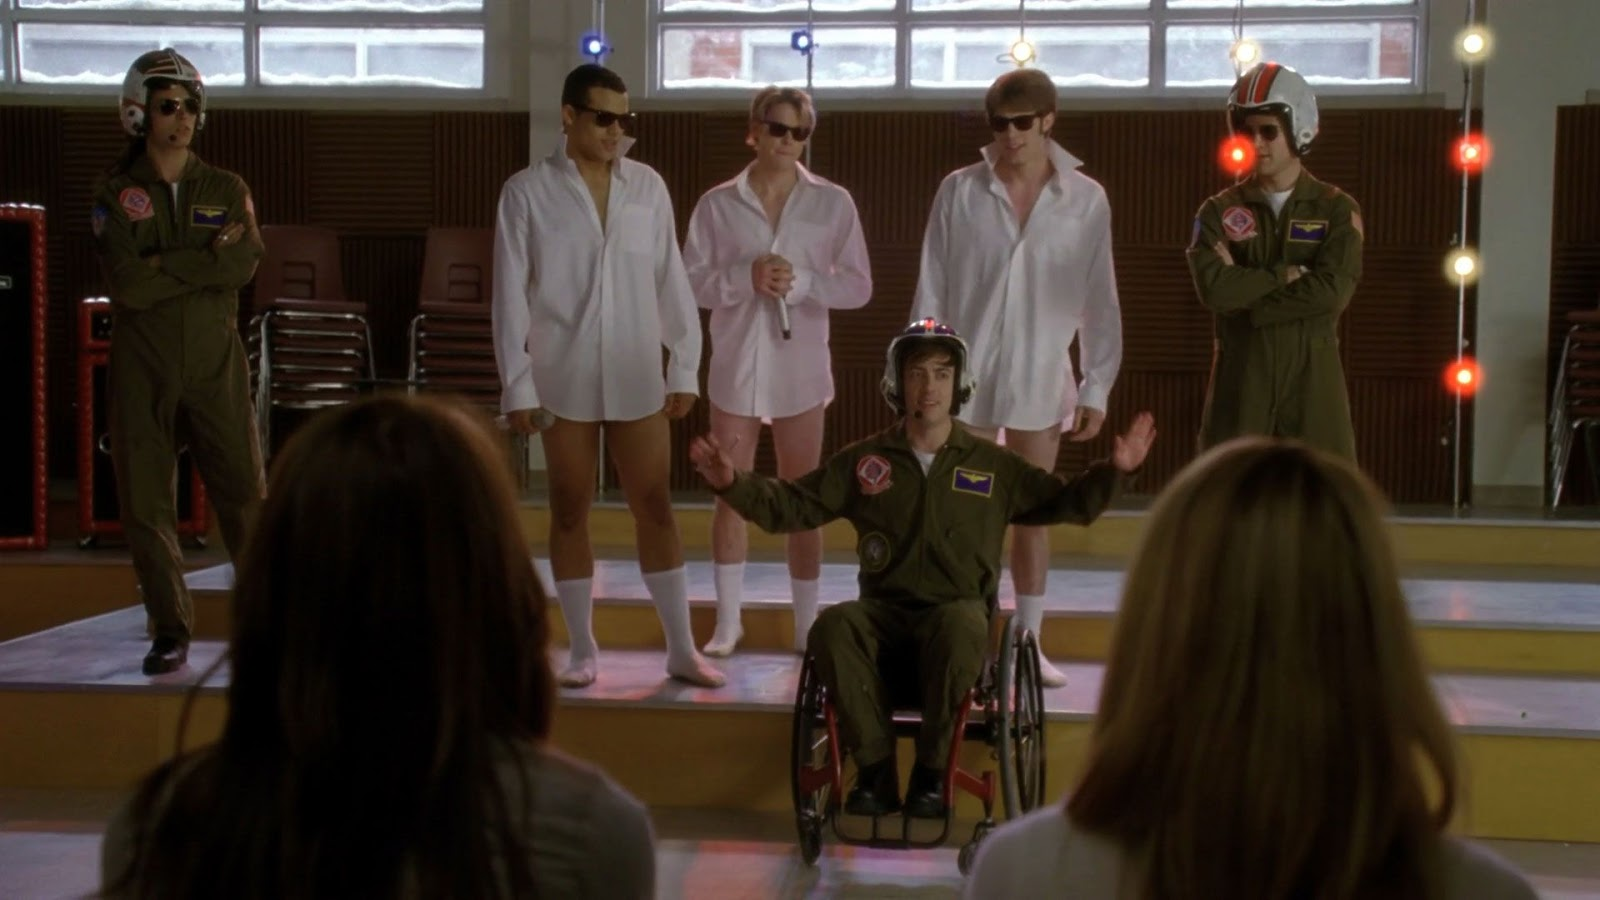 picture The Girls From Glee In Their Underwear